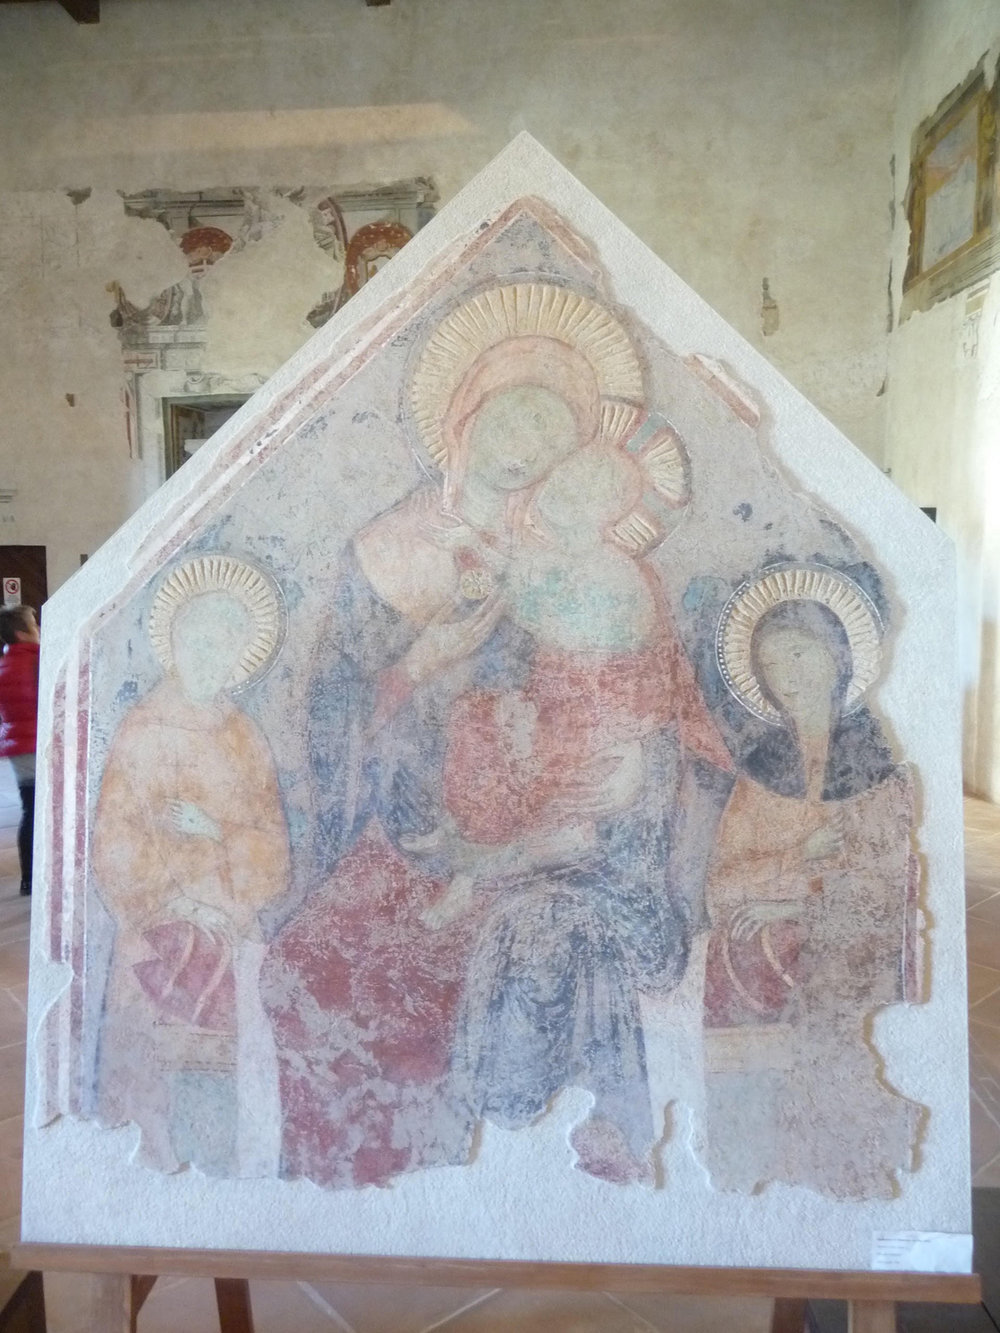 Figure 10.  Madonna and Child with Saints Francis and Claire , detached fresco by an unknown artist, c. 1300, originally from the Clarissan monastery of Santa Maria inter Angelos, near Spoleto, Italy. Now in the Museo Nazionale del Ducato, Spoleto. Photograph by Jonathan Kline.